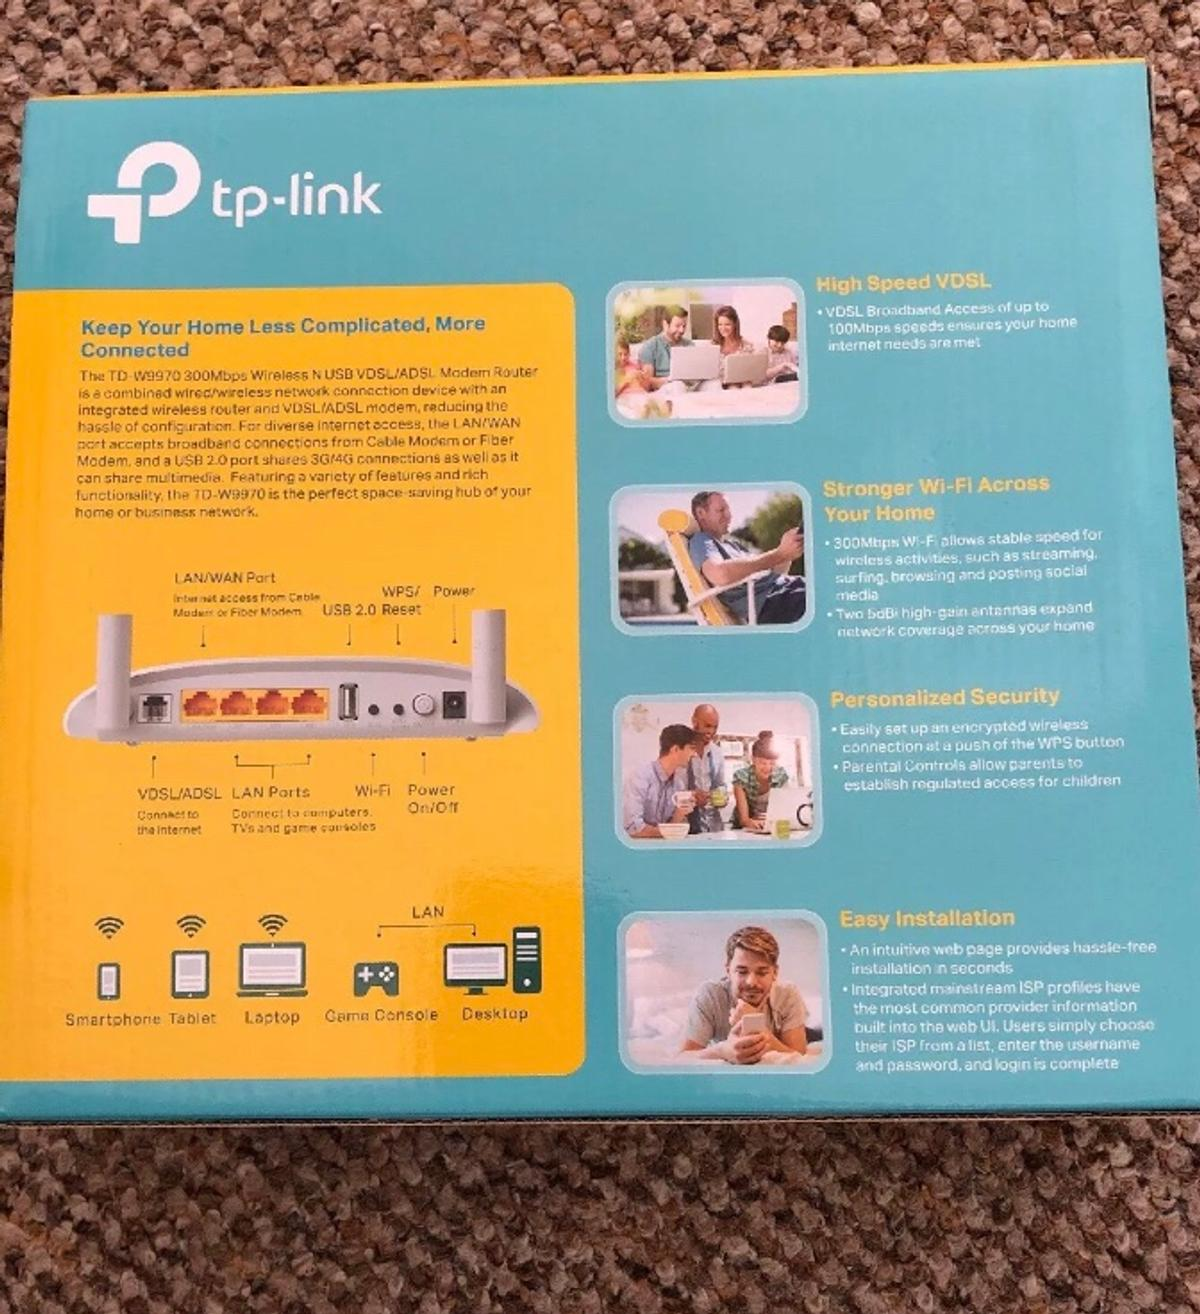 TP Link Wireless Router TD - W8961ND 300Mbps